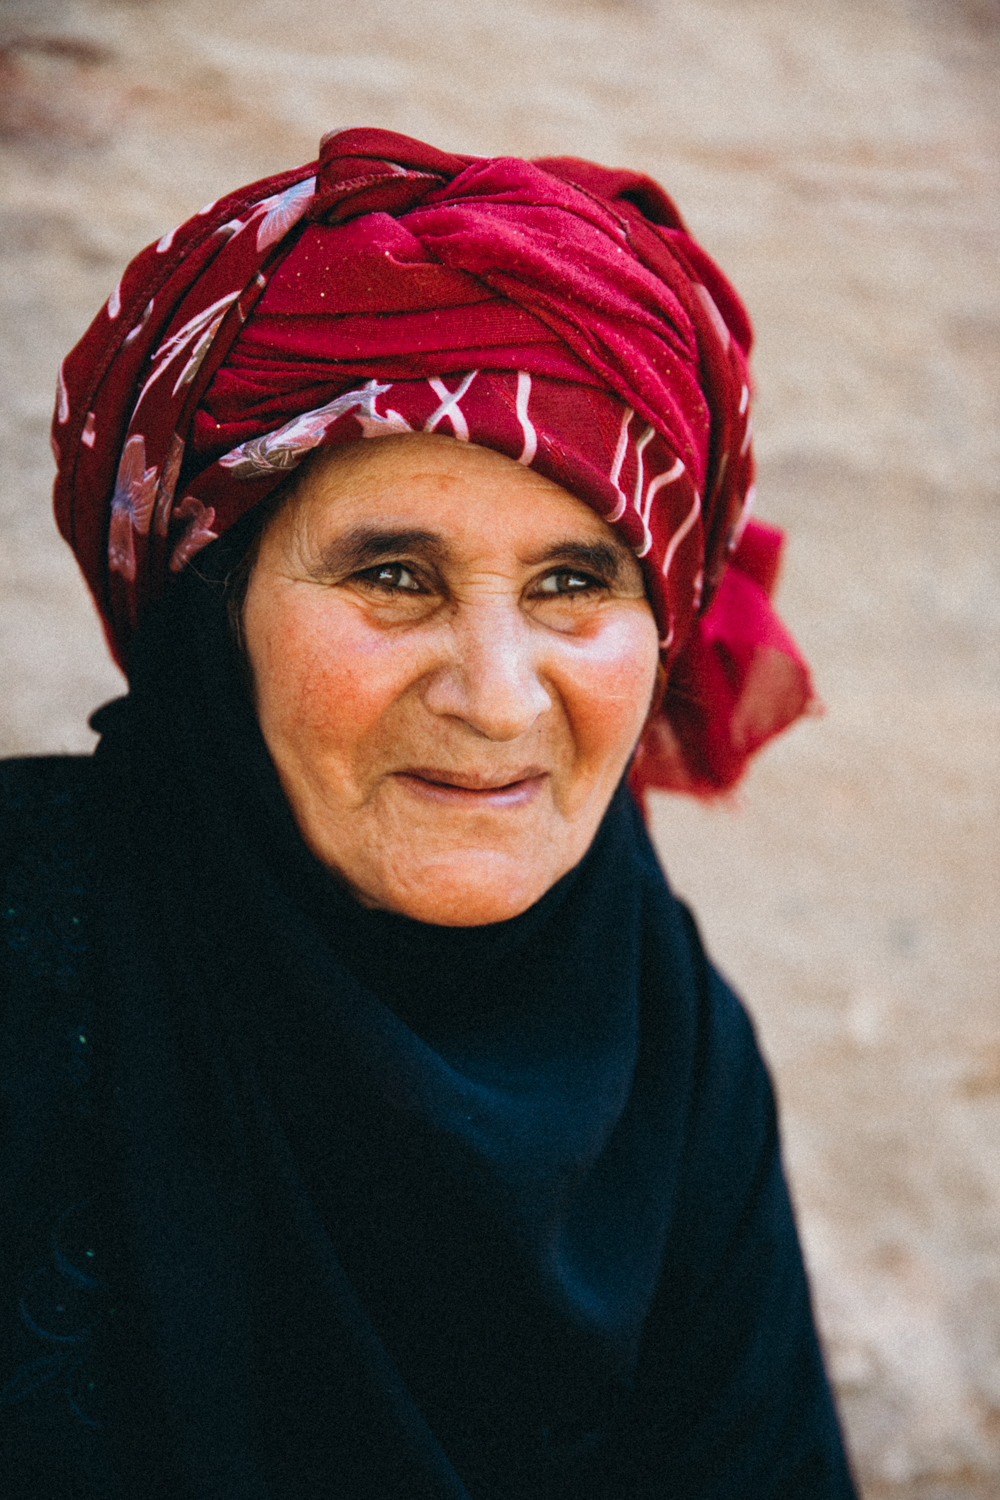 A Bedouin woman in Petra.